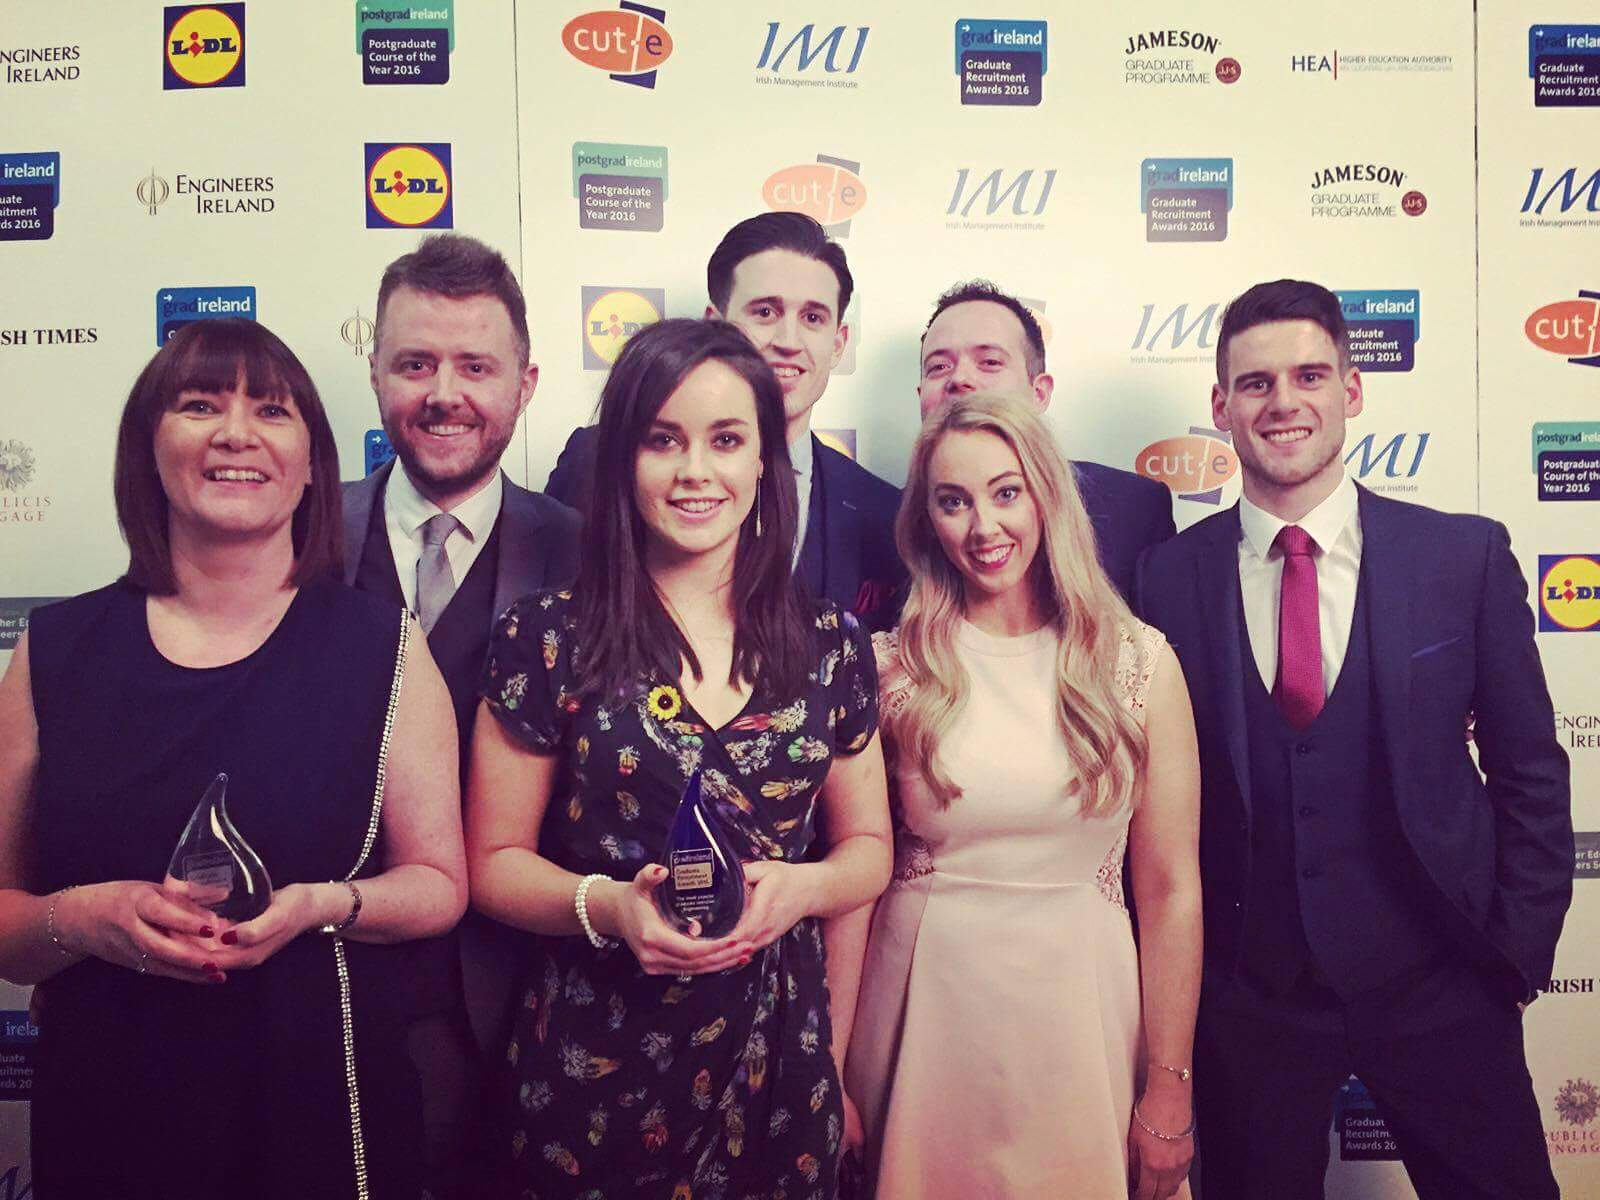 The Intel Ireland team are pictured at the 2016 Graduate Recruitment awards